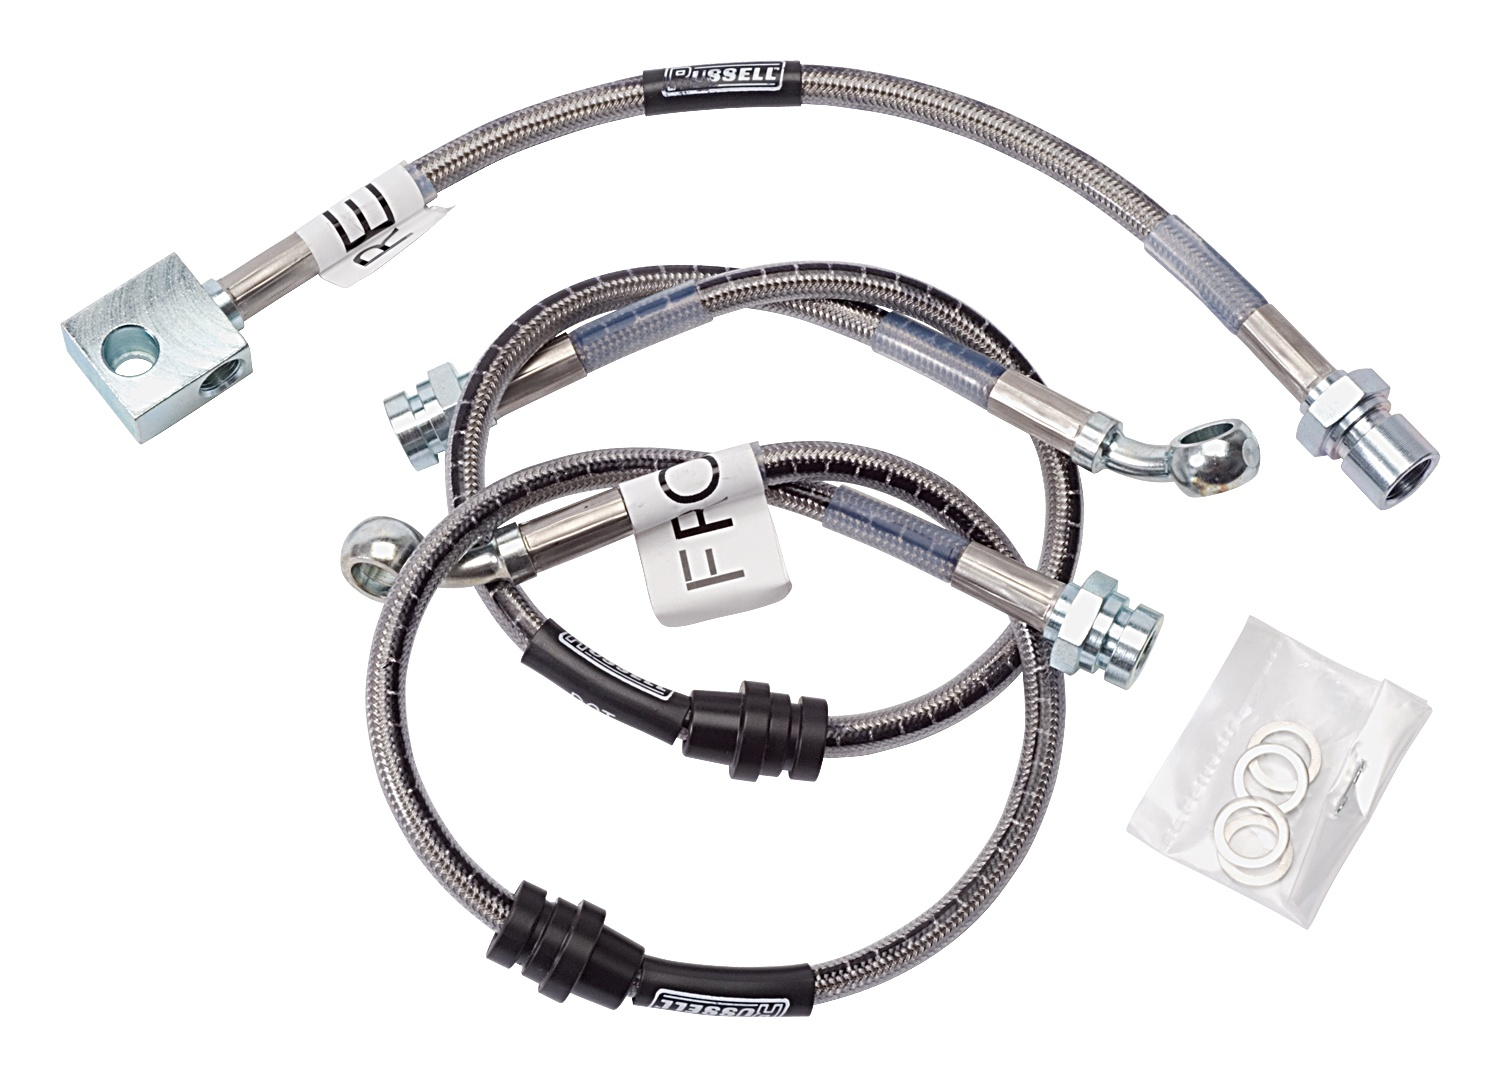 Russell 672340 Brake Lines Street Legal Braided Stainless Chevy GMC Pickup SUV